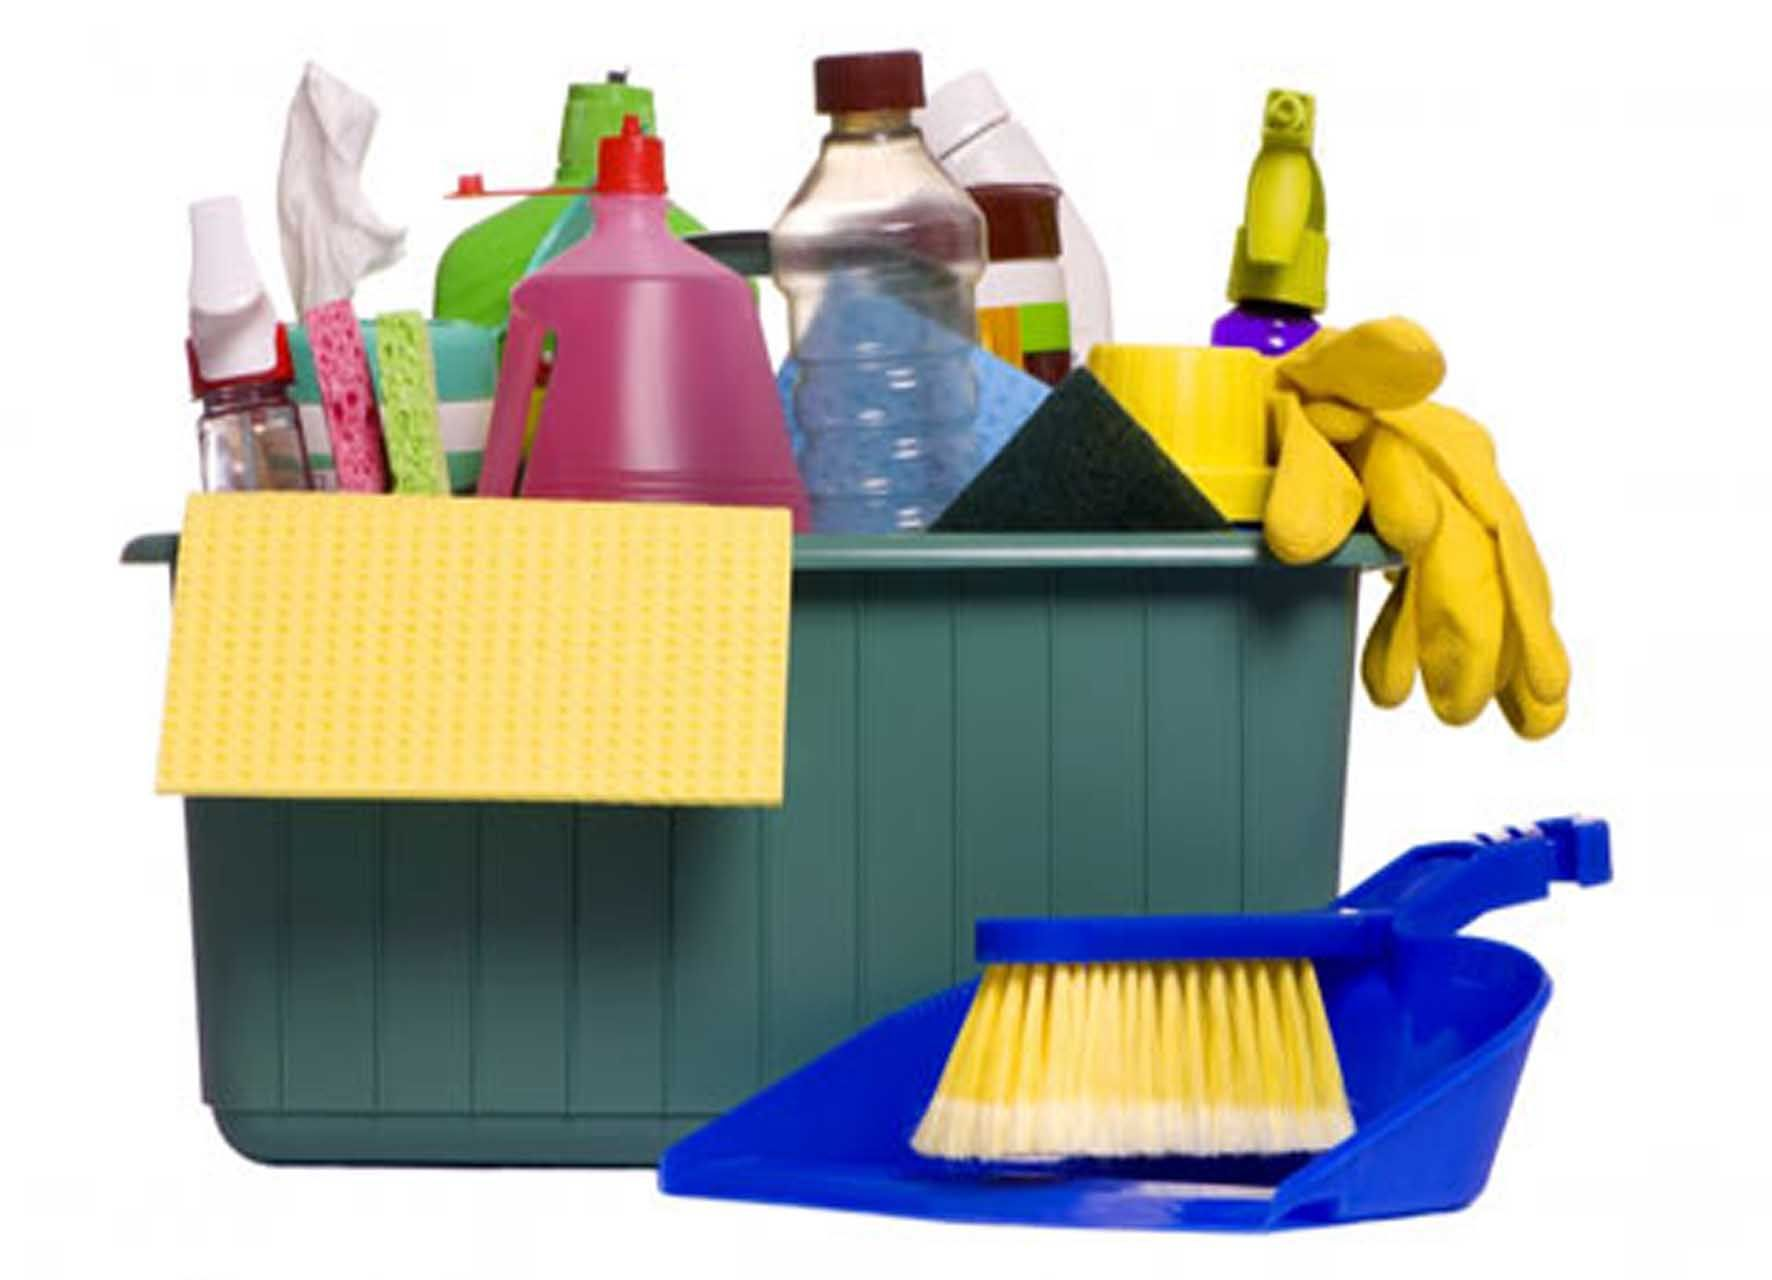 Condo Cleaning Products